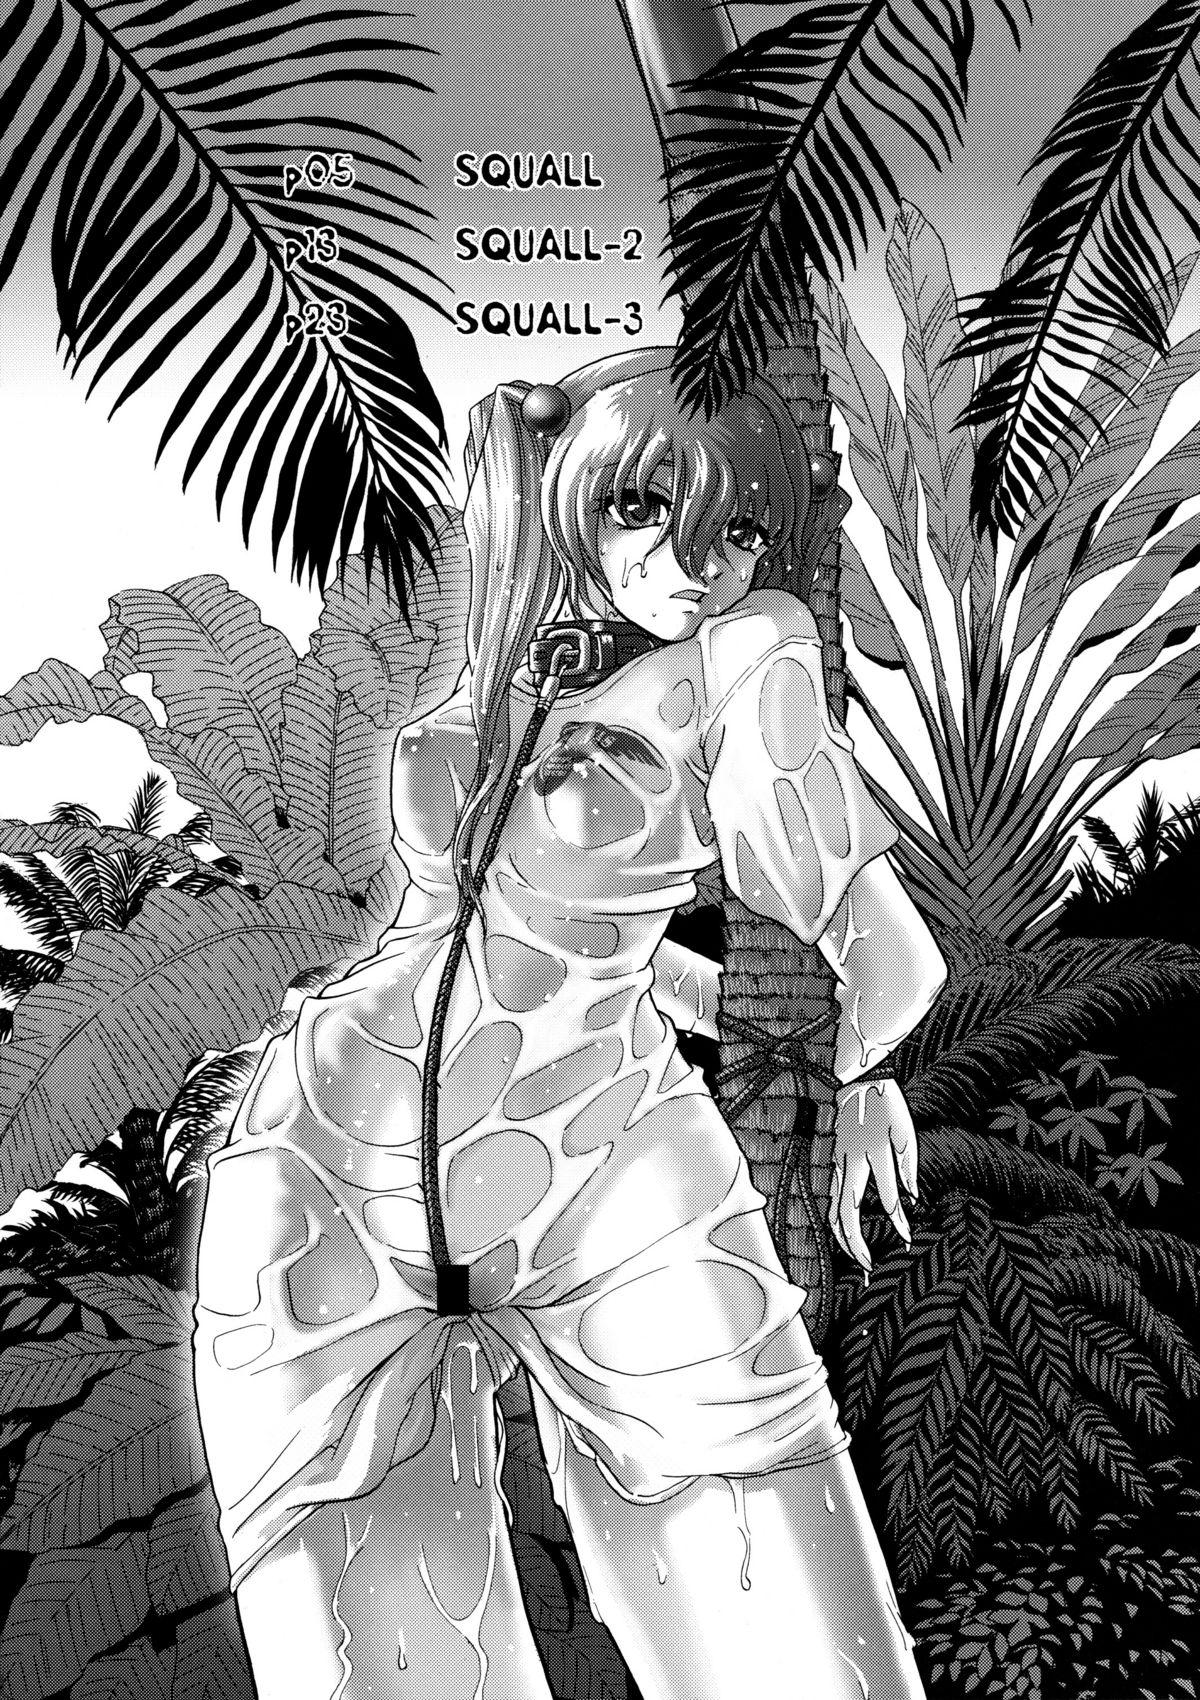 Squall 2